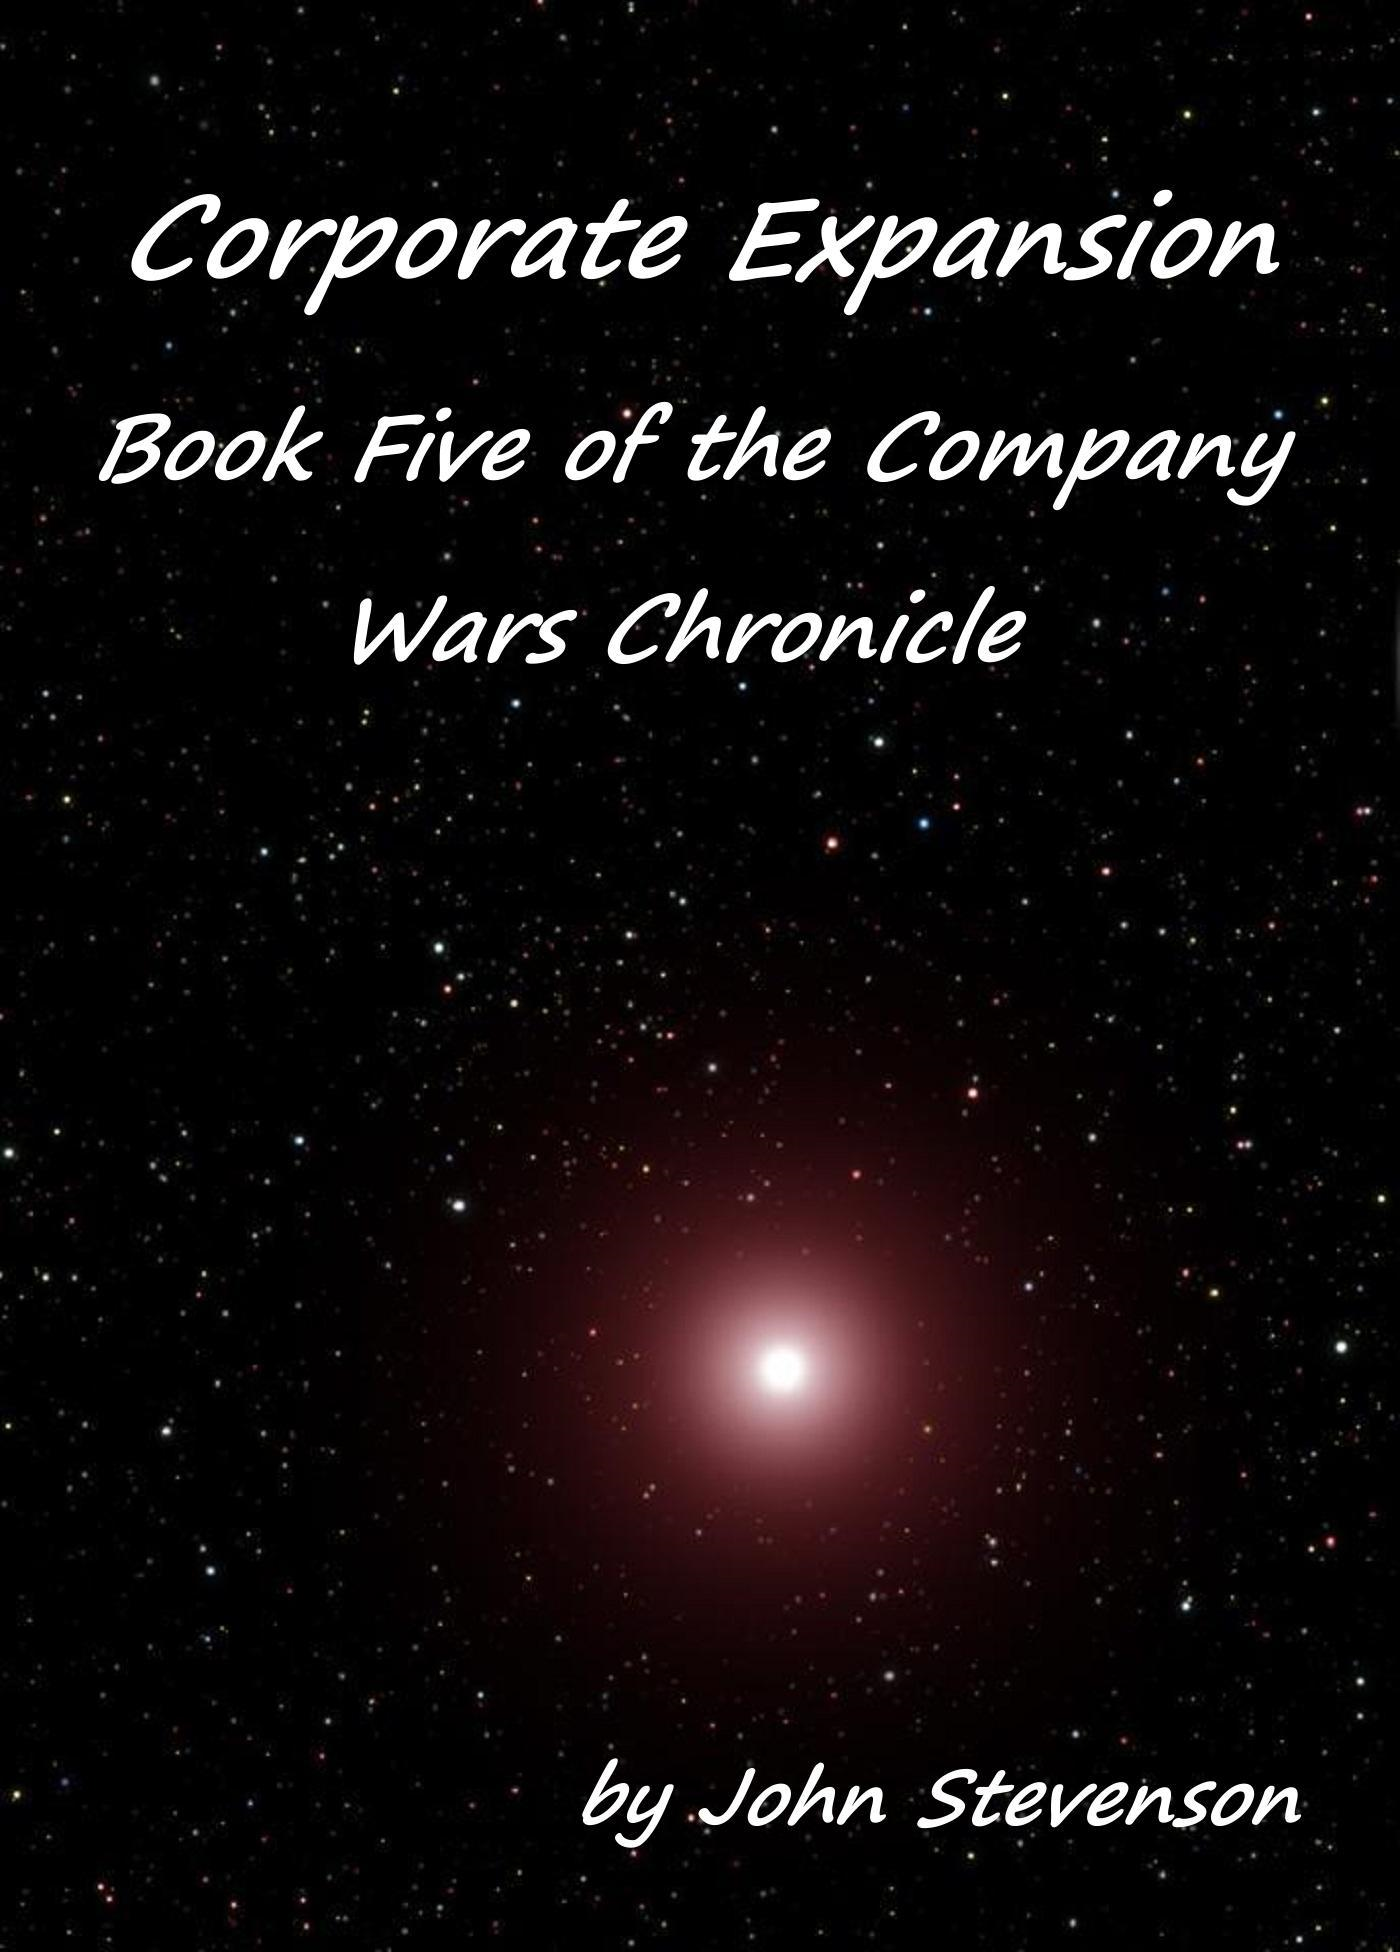 Corporate Expansion: Book Five of the Company Wars Chronicle